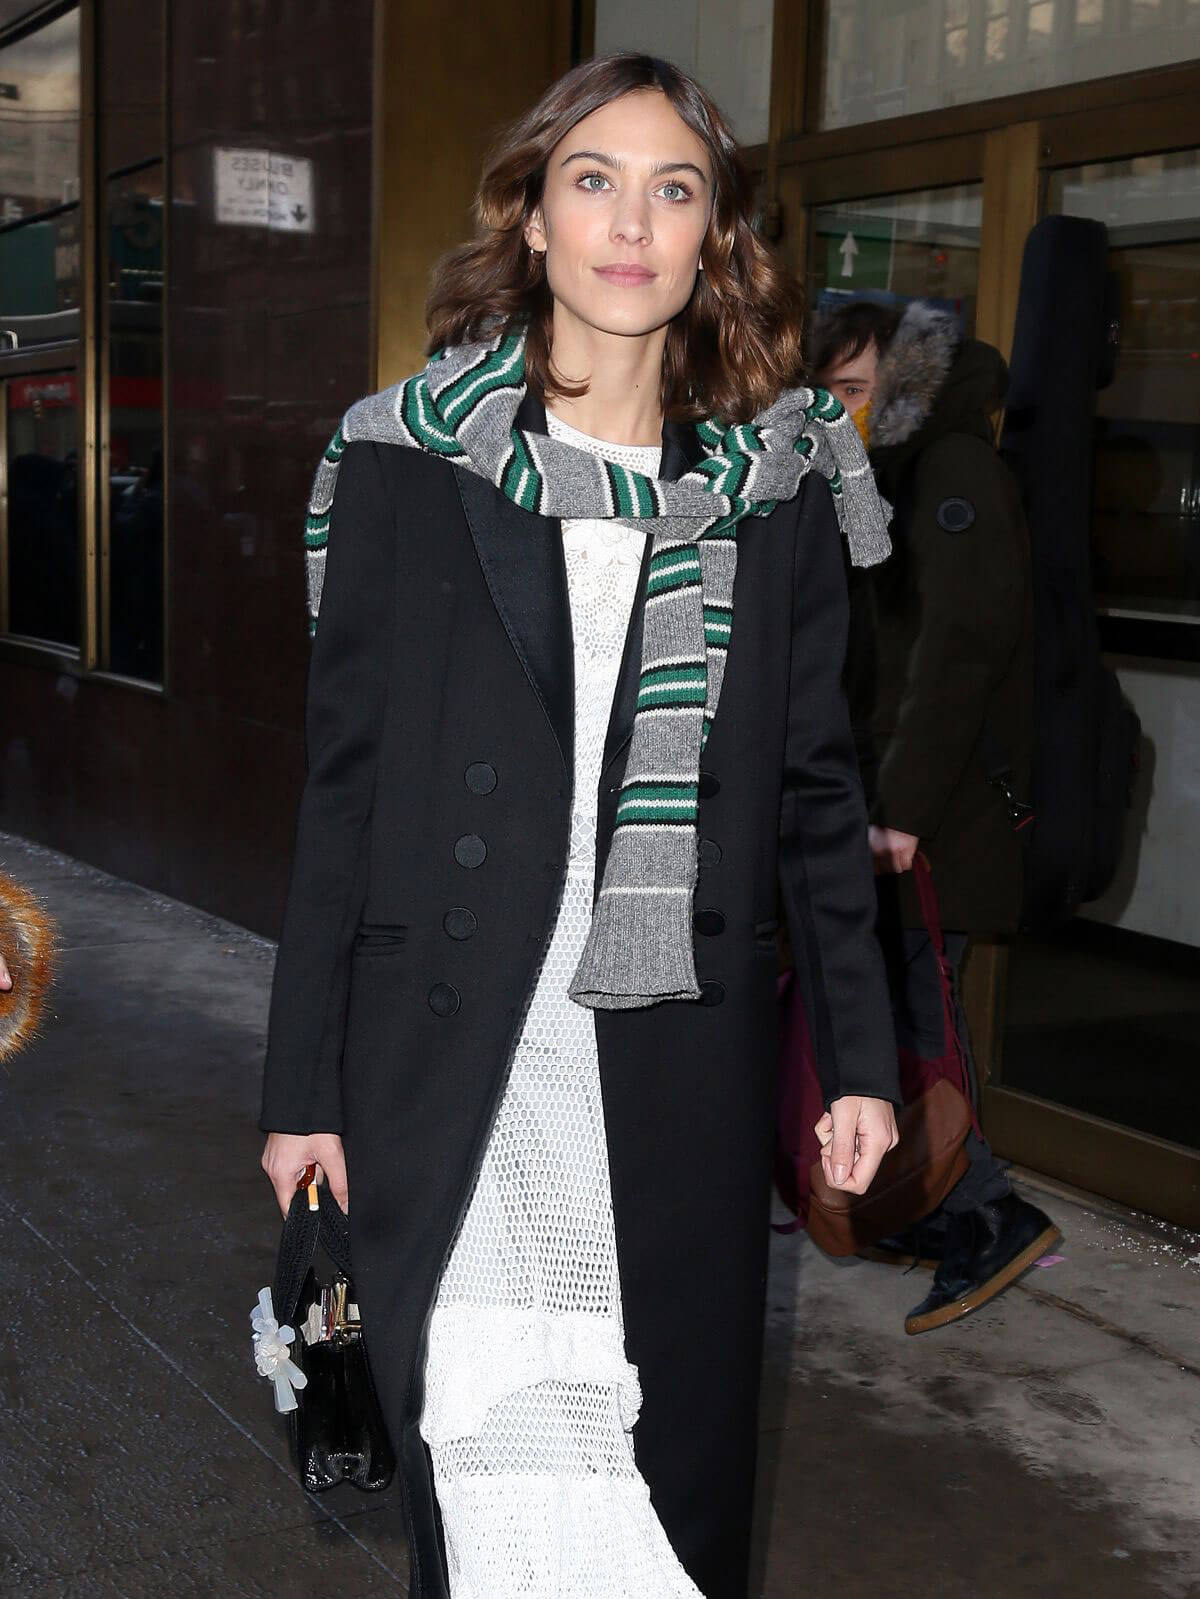 Alexa Chung Arrives at Calvin Klein Fashion Show in New York